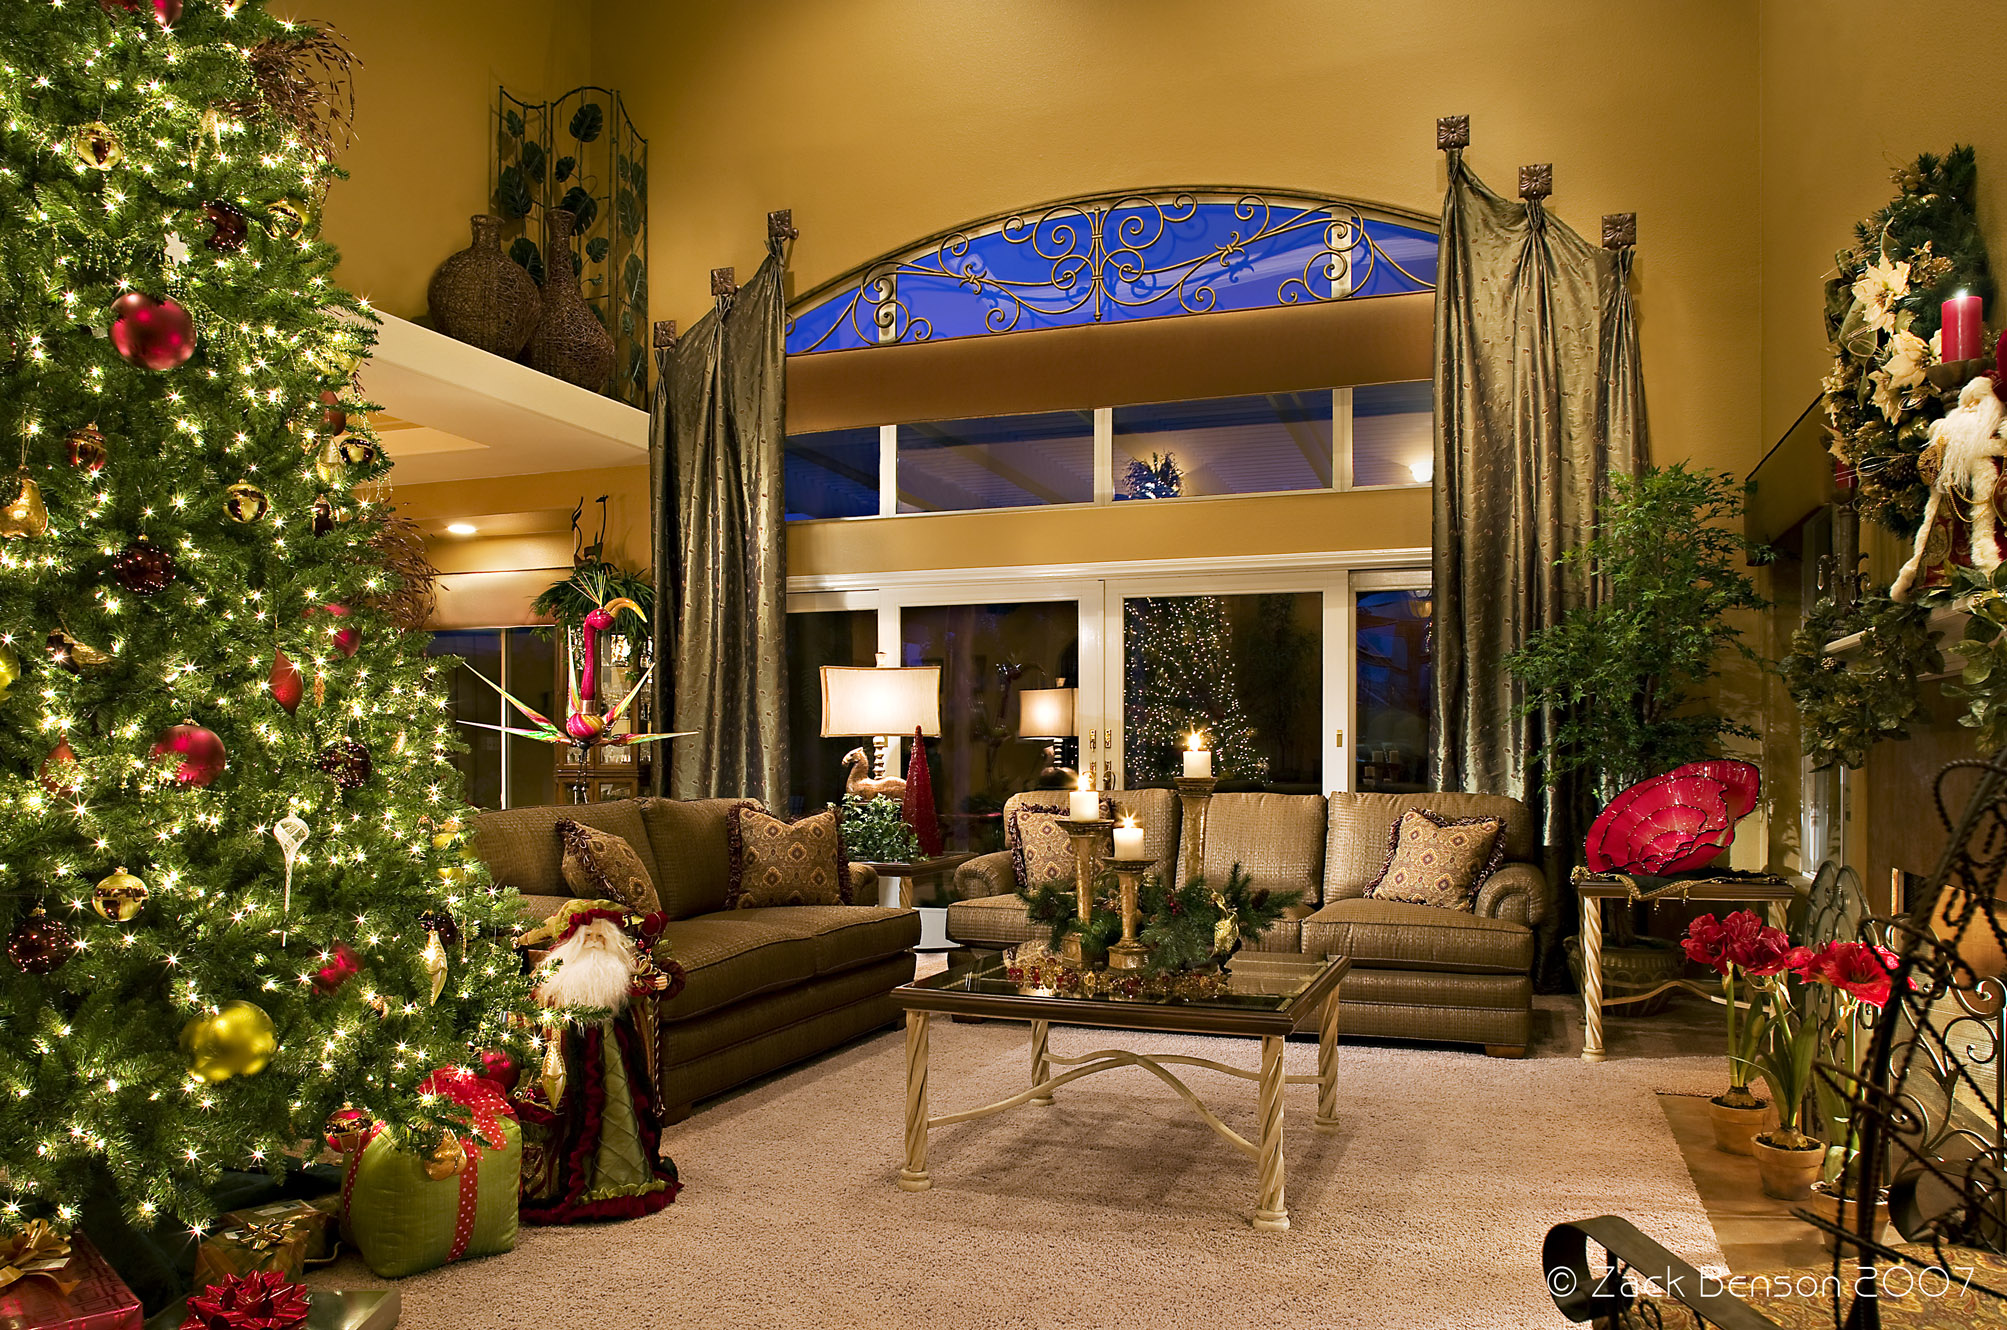 10 Tips For Holiday Decorating Decorating Den Interiors Blog Decorating Tips Design